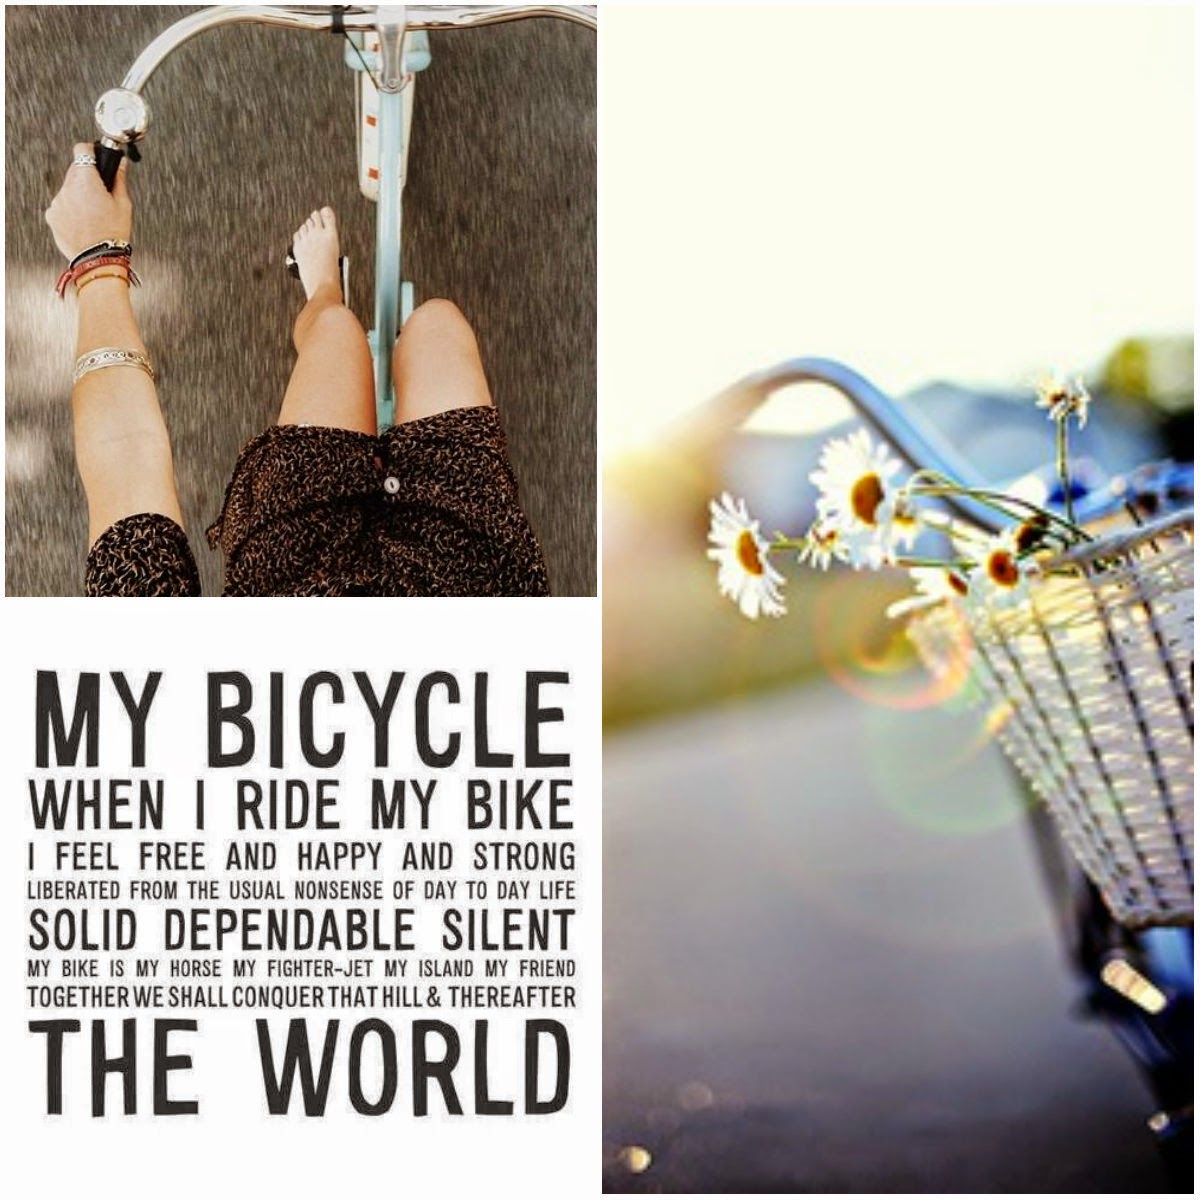 Currently #22 - Some Thoughts on Cycling